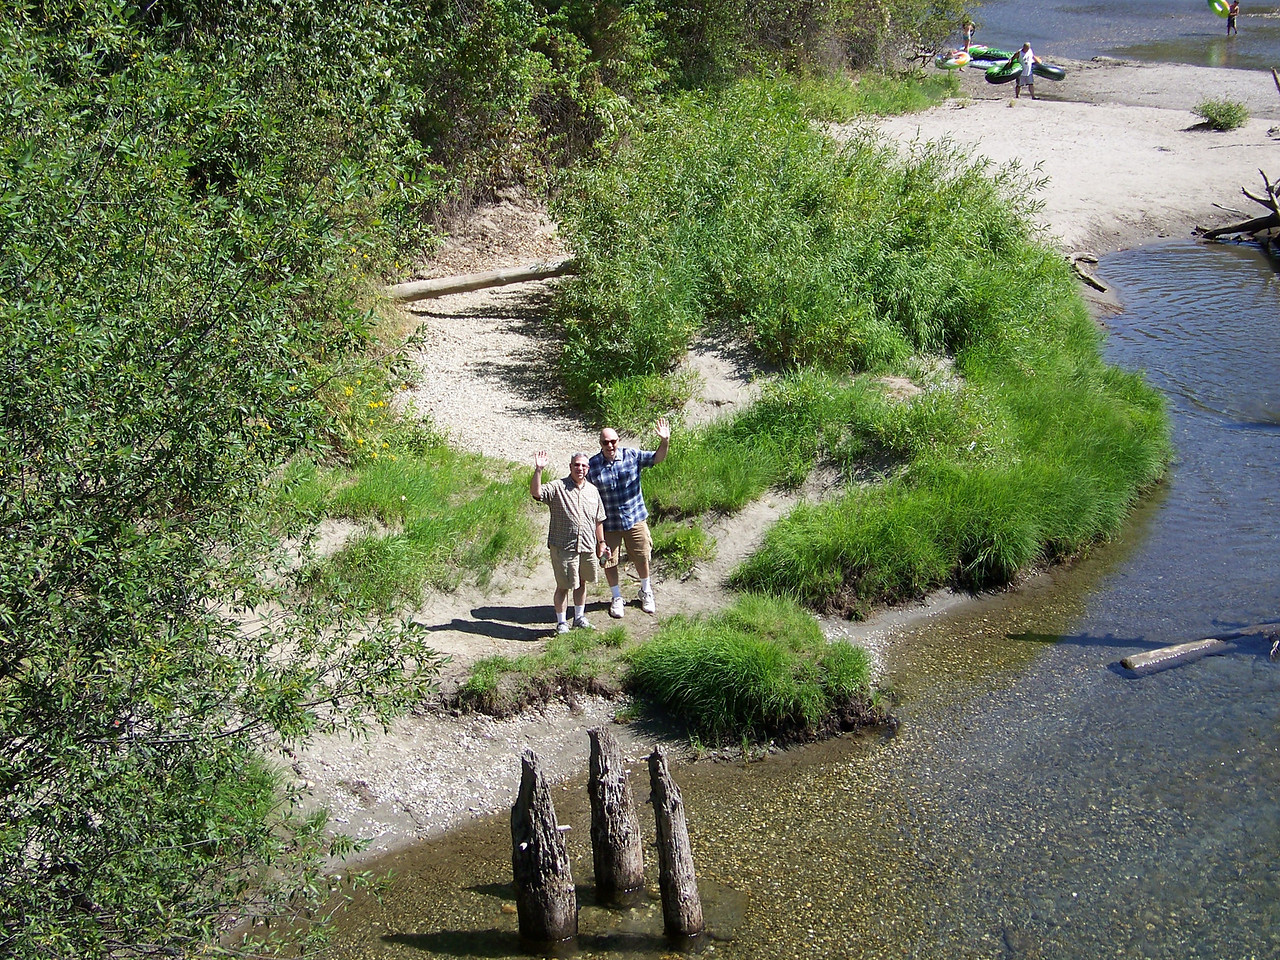 """Pat made it to the river, too!<br /> After this, we hiked back up to Front Street (where we left Pat's car) and said """"Auf wiedersehen!"""" to Leavenworth.<br /> [Leavenworth, WA - Waterfront Park]"""